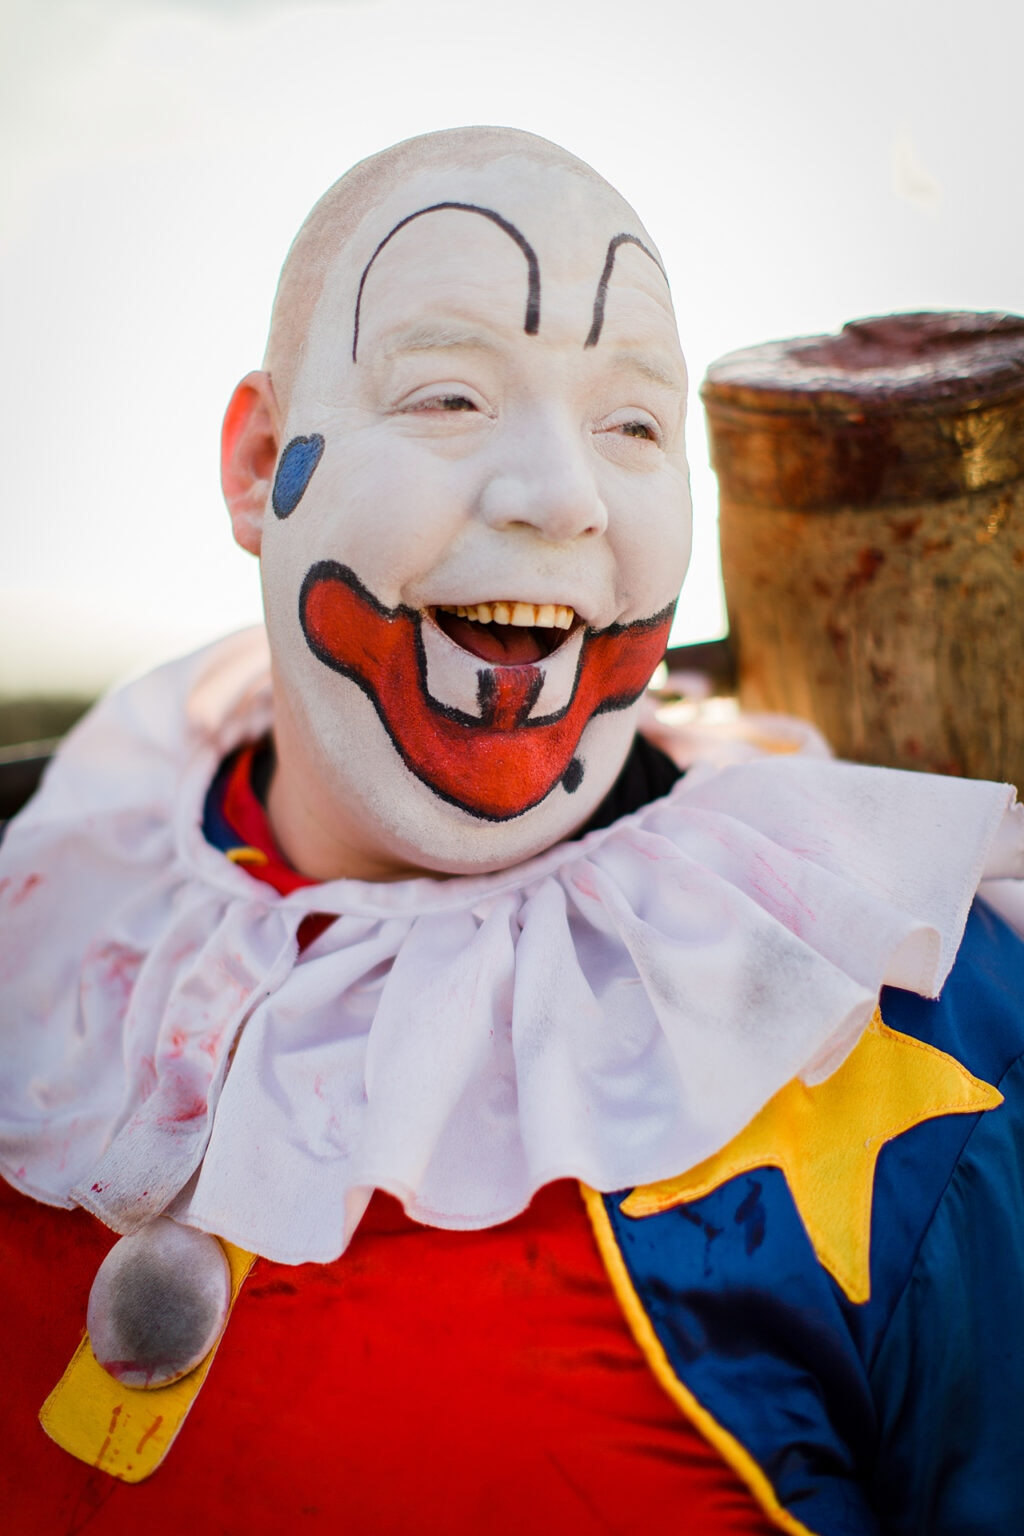 ryan clapp 1024x1536 - Bring in the Clowns! Join Our CIRCUS OF THE DEAD Virtual Reunion/Q&A on Tuesday July 14th at 6 PM (PST)